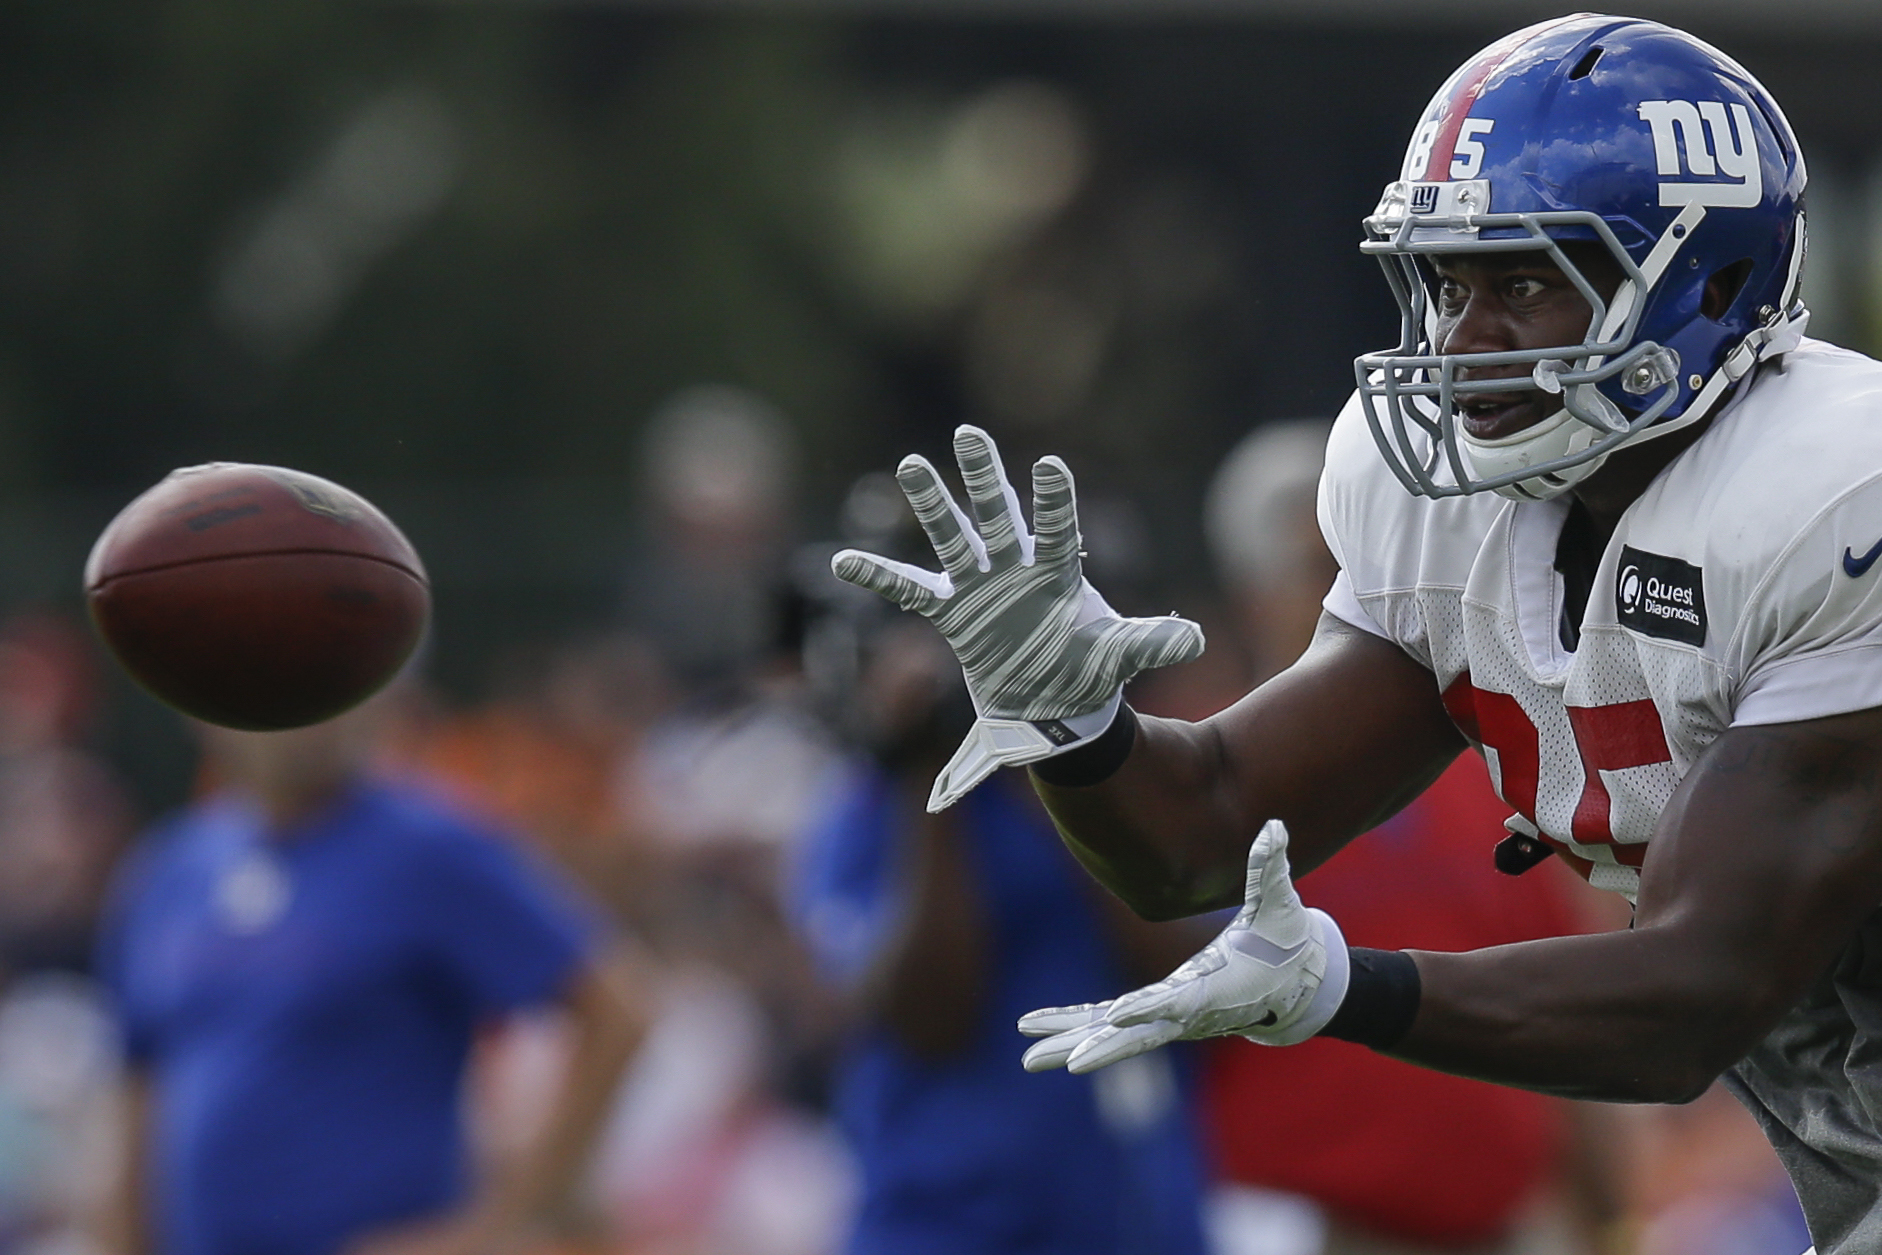 New York Giants tight end Daniel Fells catches a pass during a joint NFL football training camp with the Cincinnati Bengals, Tuesday, Aug. 11, 2015, in Cincinnati. (AP Photo/John Minchillo)